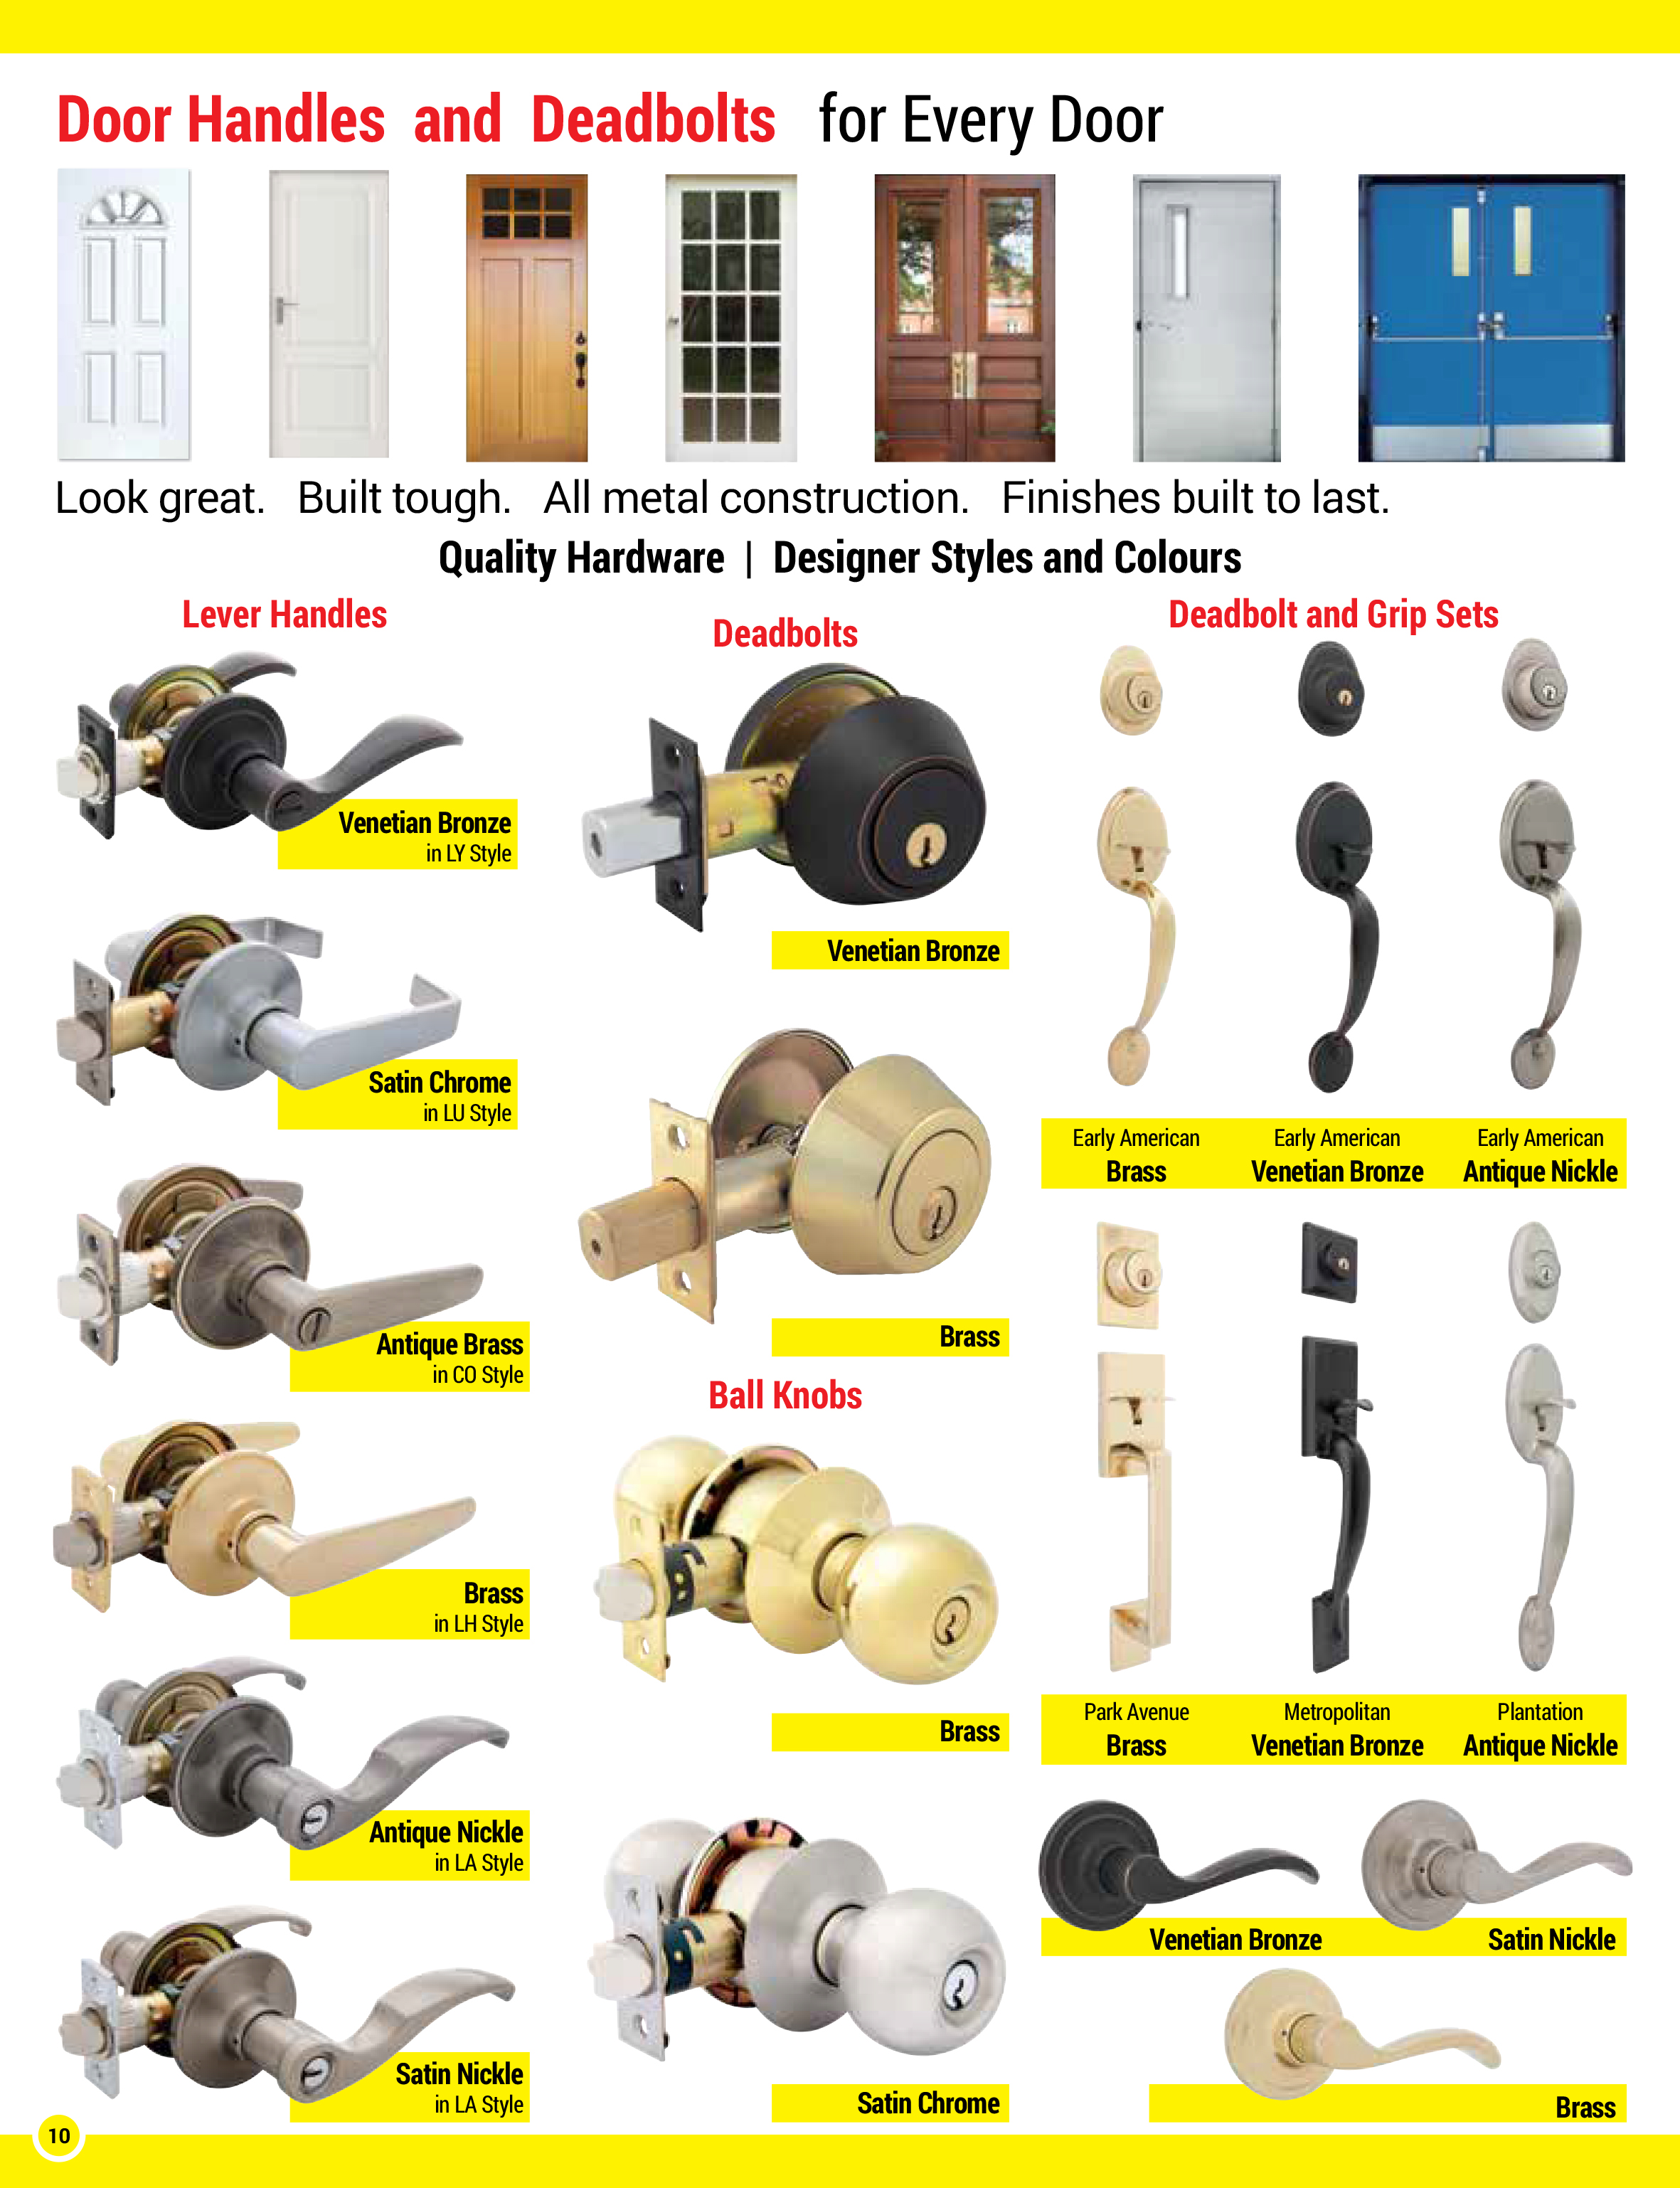 Elegant grip sets, professional grade deadbolts, lever handles and ball knobs. Door Surgeon provides sales and service to match your door hardware needs with your door requirements. Door break-in repair and door security hardware selection is provided by Door Surgeon's installation technicians.